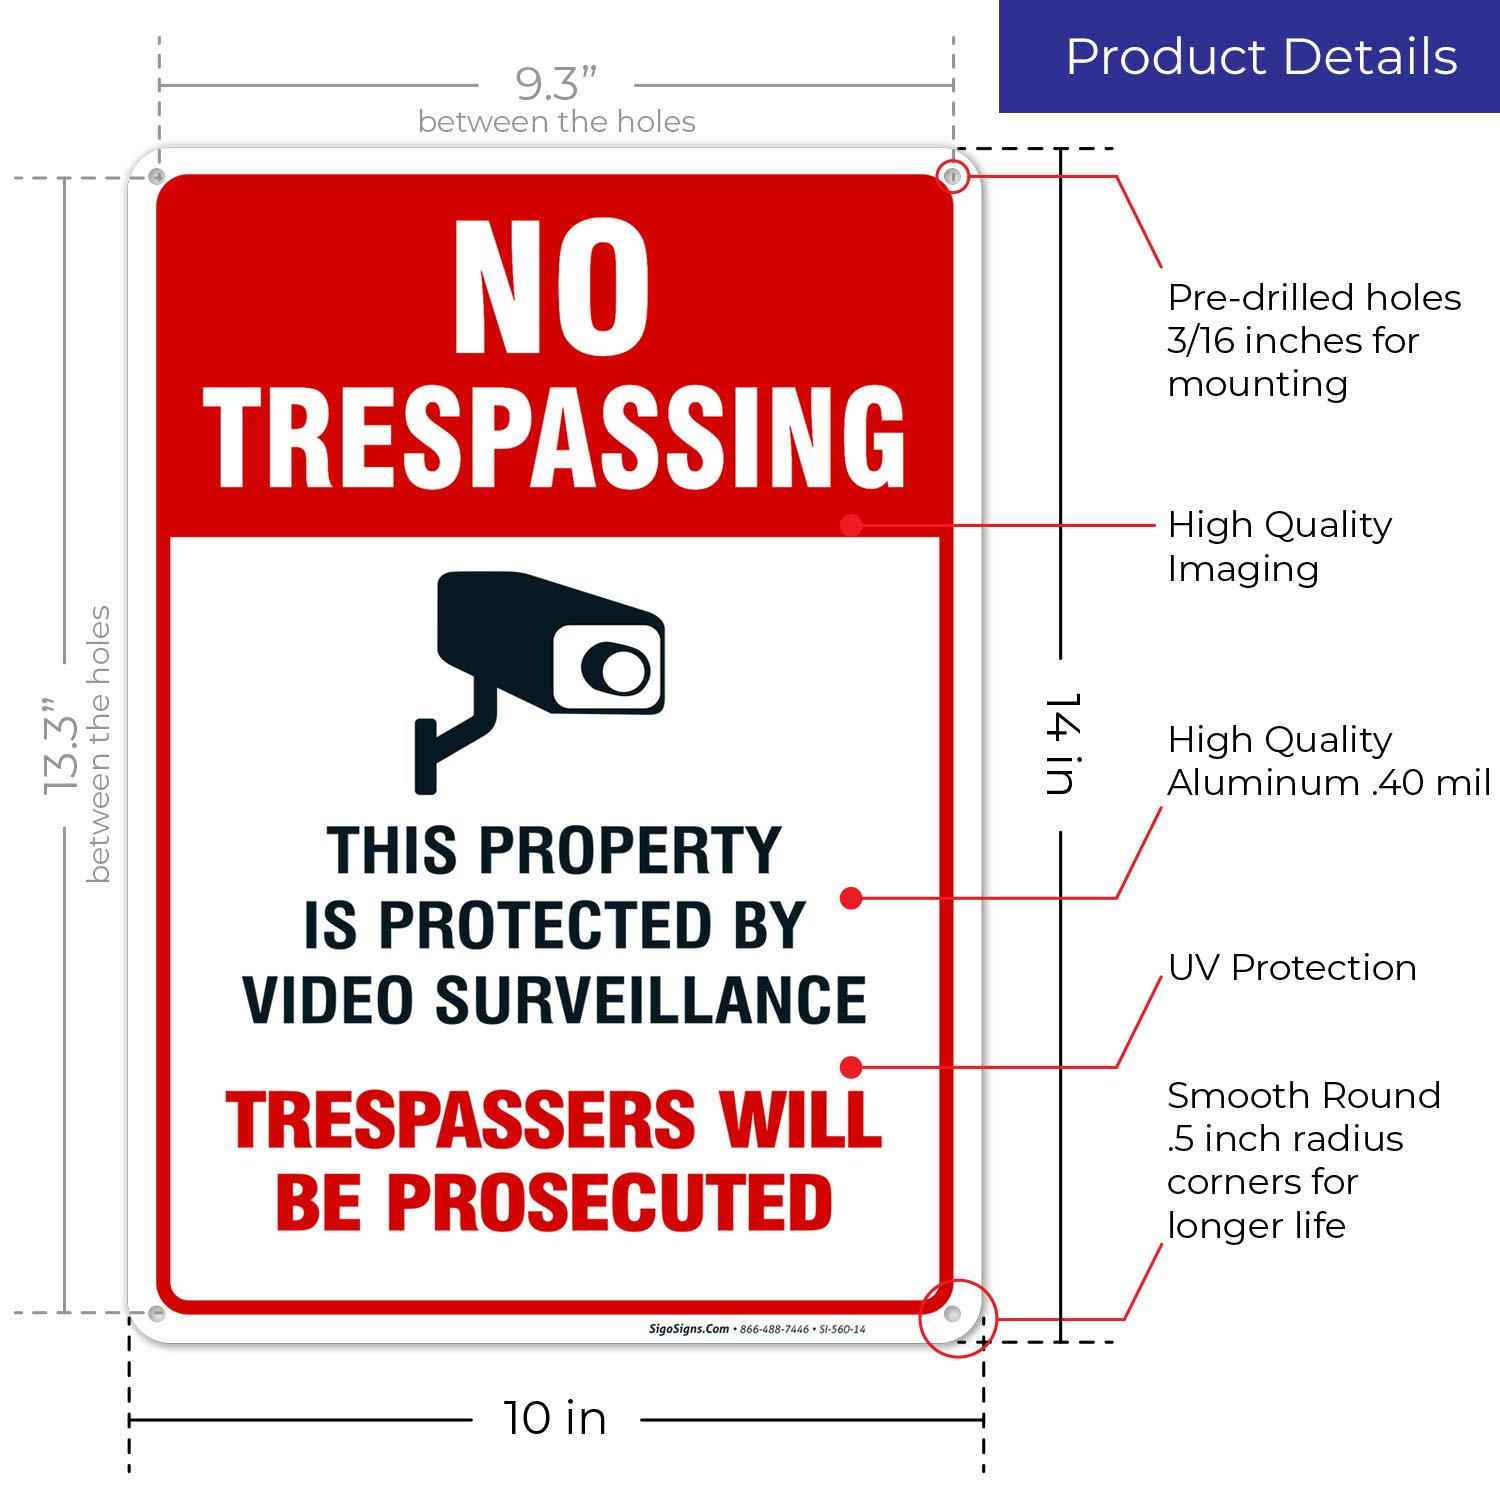 Amazon.com: Cartel de videovigilancia - No Trespassing ...